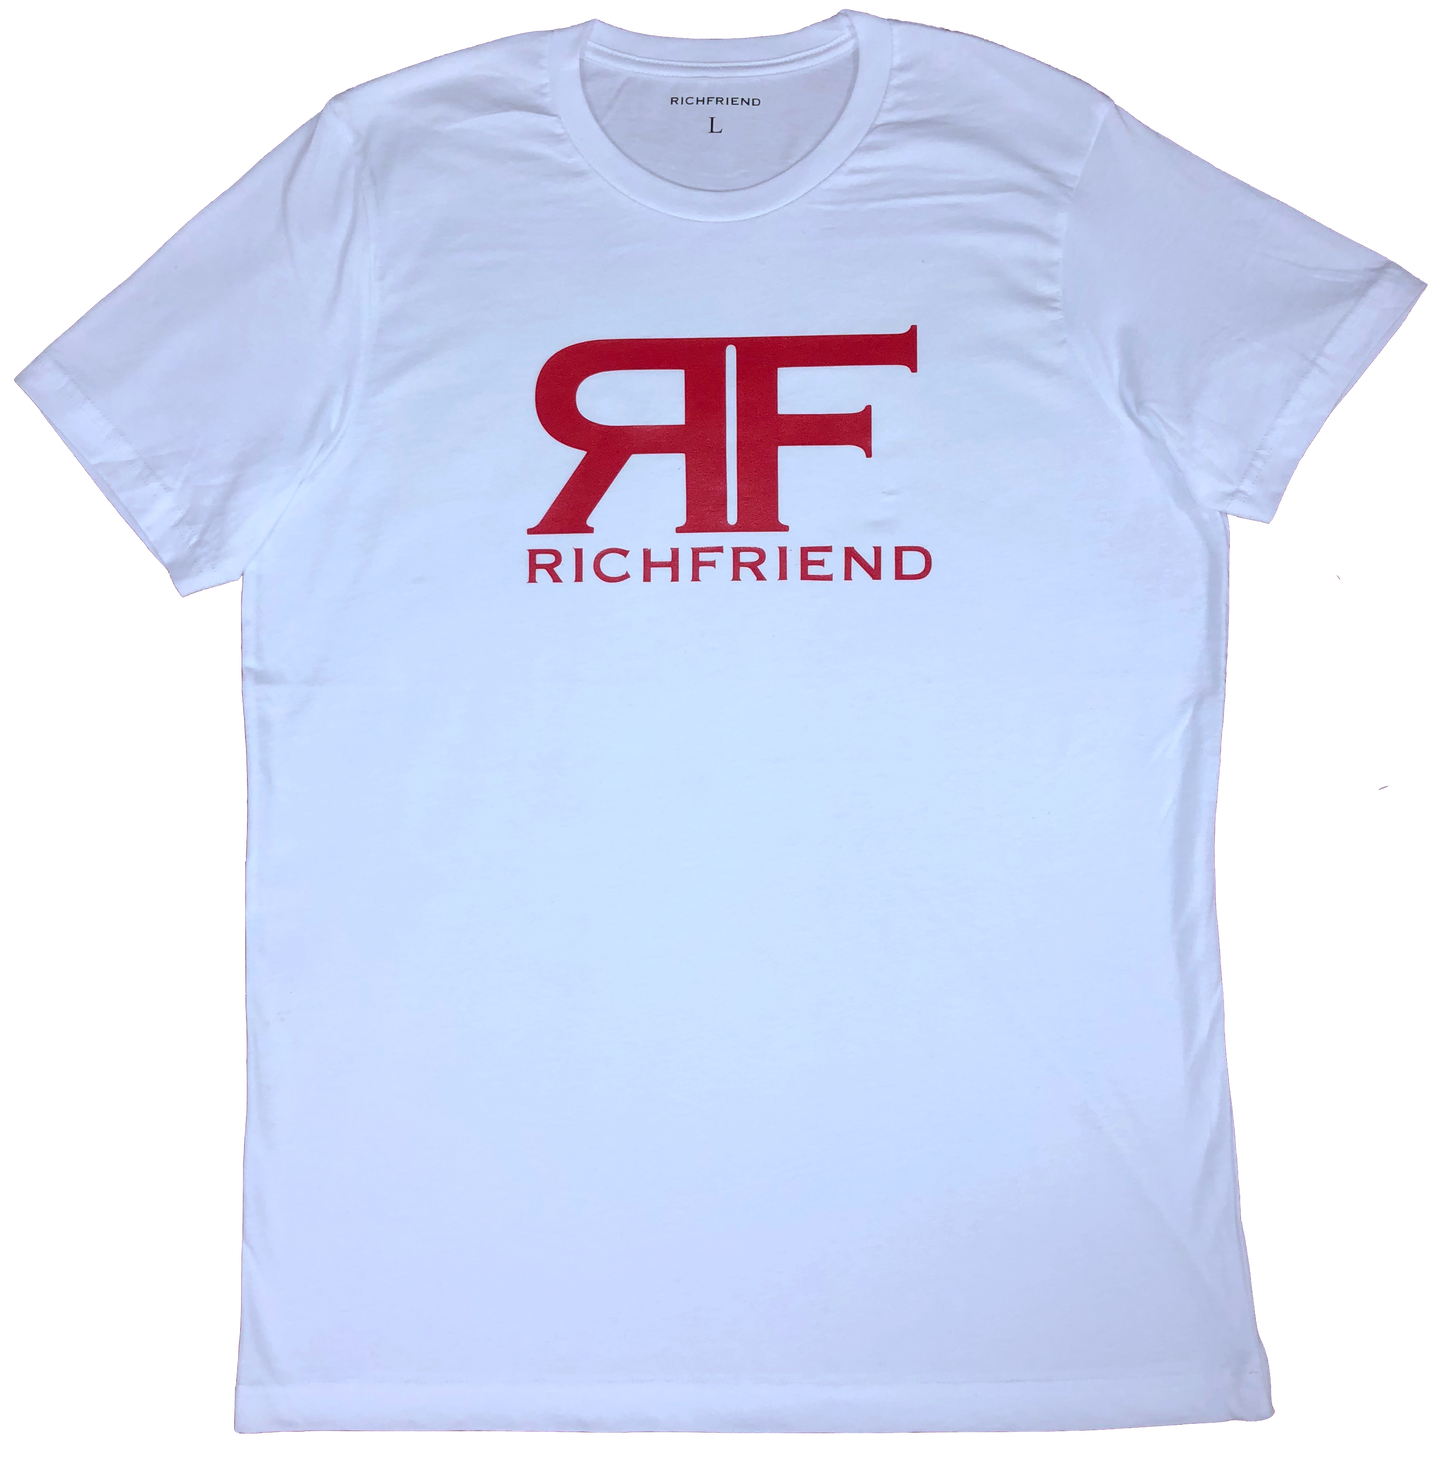 Red Classic Richfriend logo